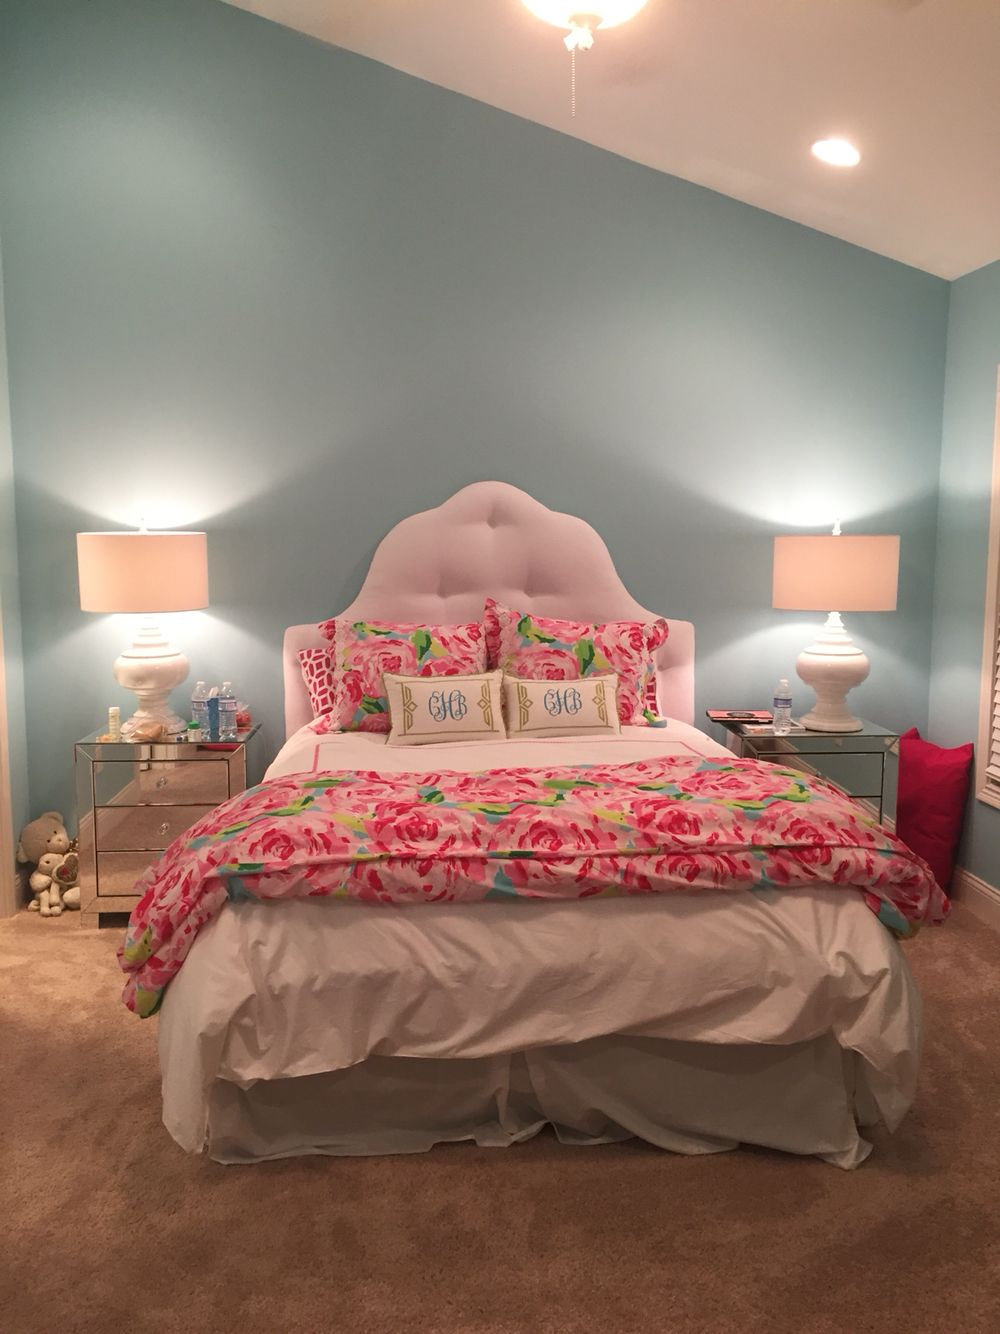 Himalayan Salt Lamp Bed Bath And Beyond Inspiration Lilly Pulitzer And Pottery Barn Teen Comforter With Monogrammed Decorating Design